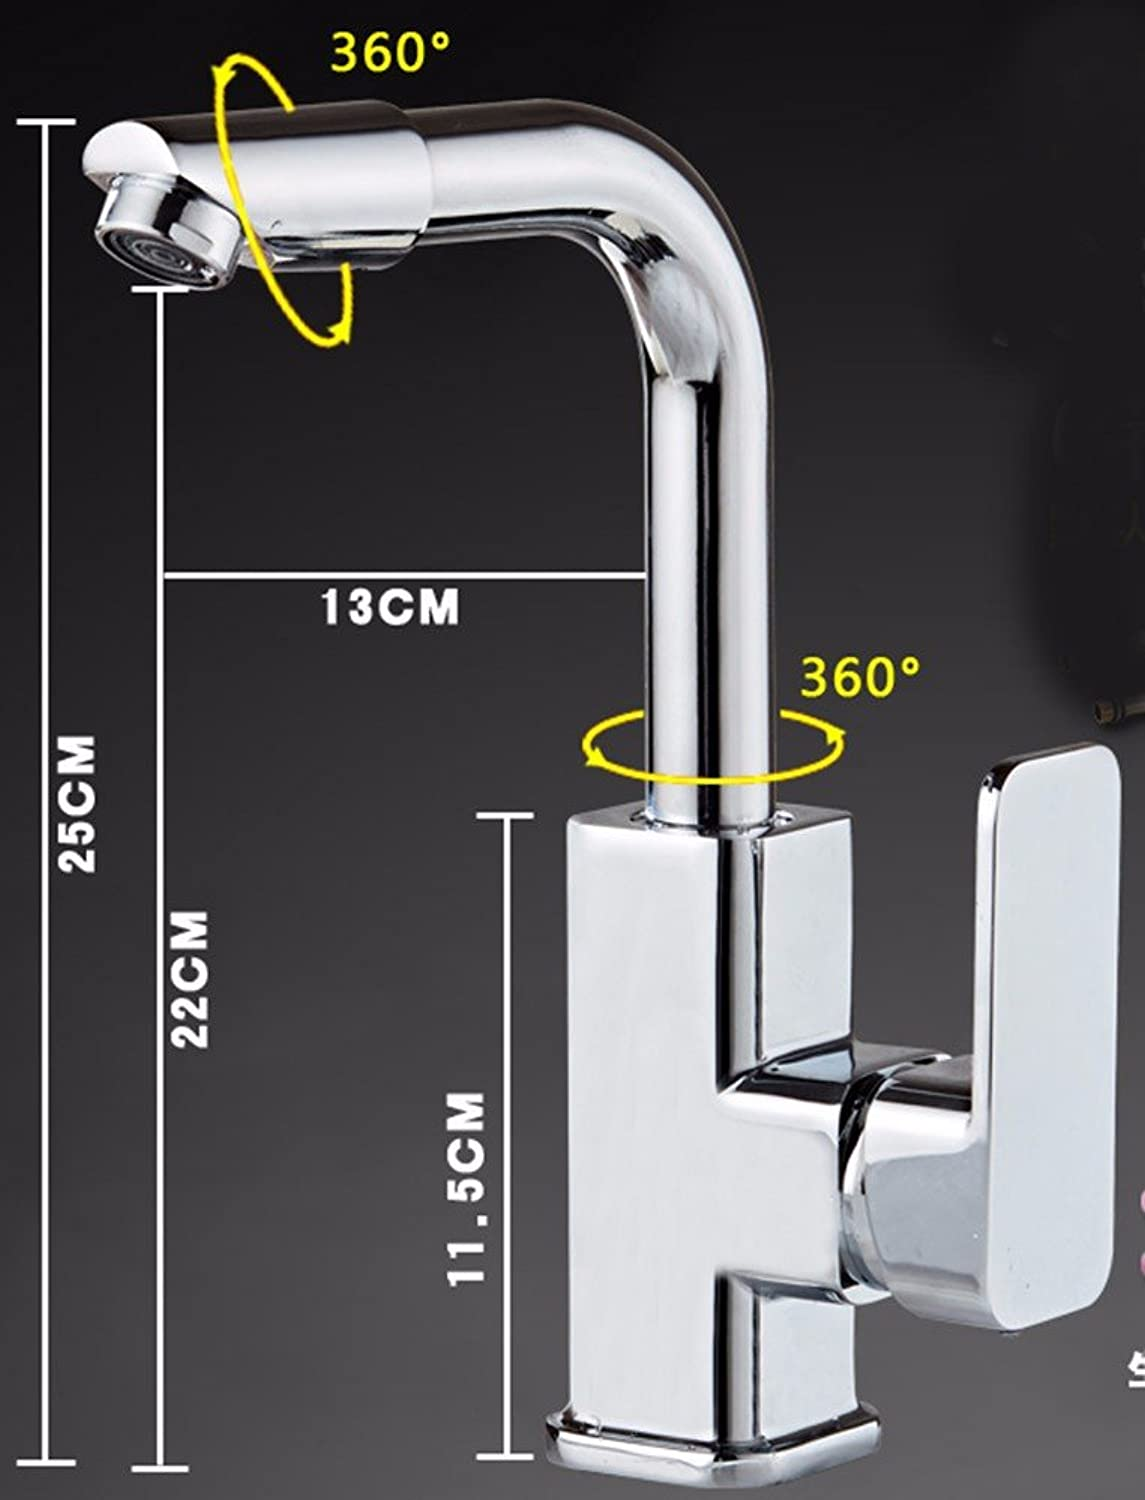 Hlluya Professional Sink Mixer Tap Kitchen Faucet Copper, hot and cold water, washing your face, 2